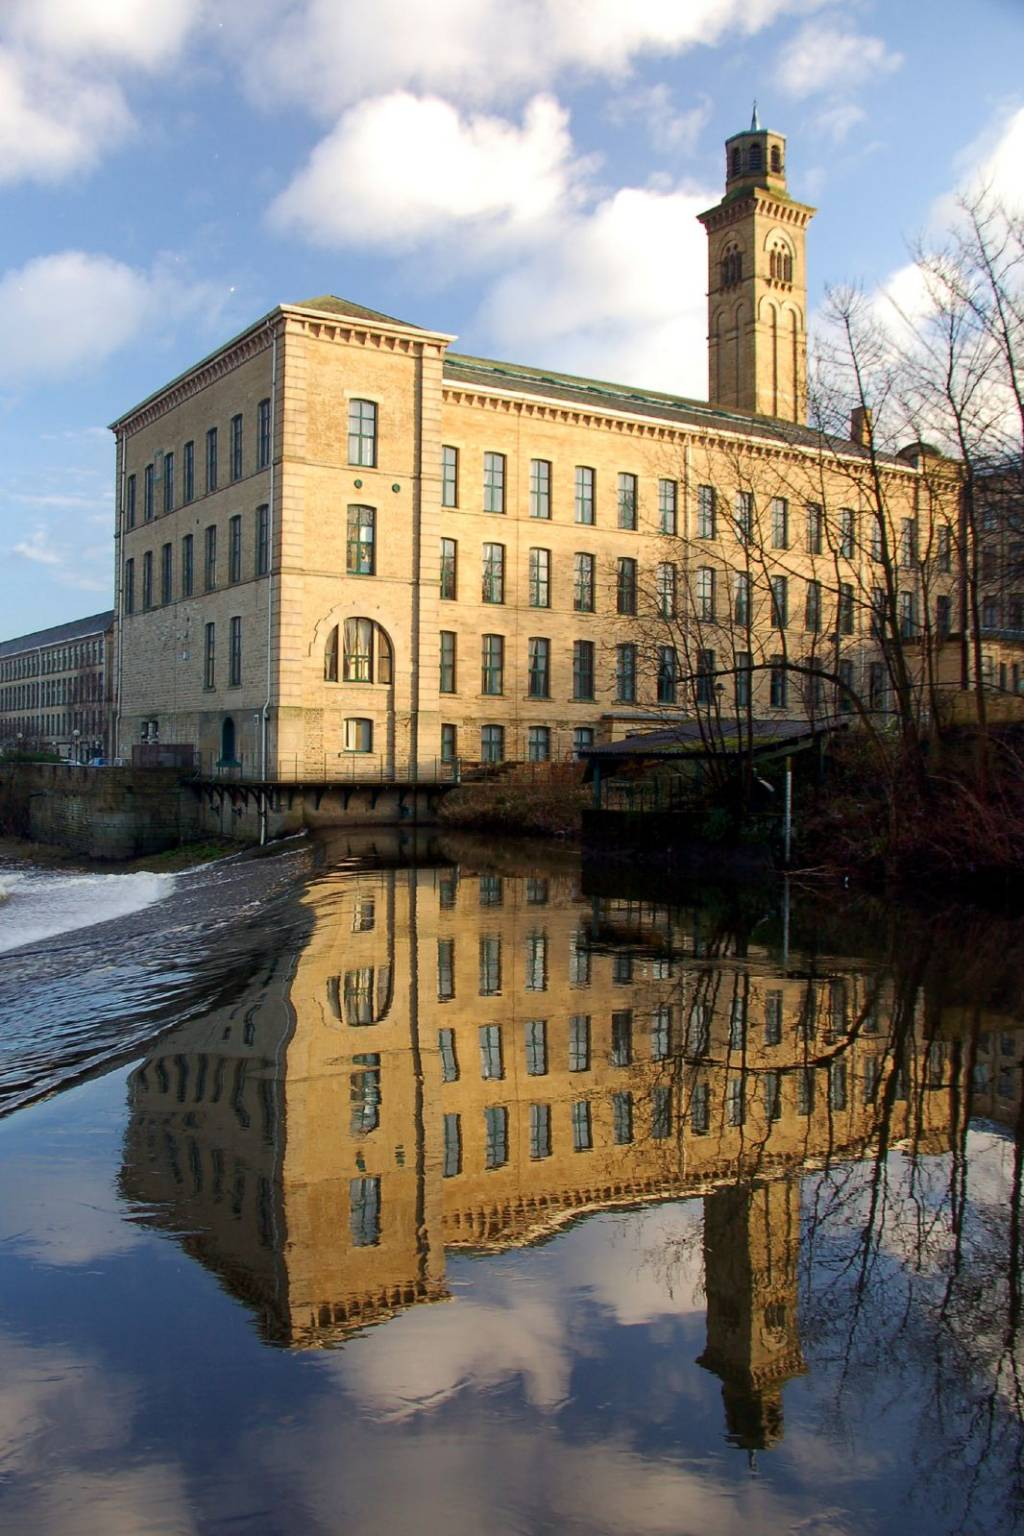 industrial revolution essay in st person point of view speaking saltaire new mill part of a unesco world heritage site in west yorkshire england